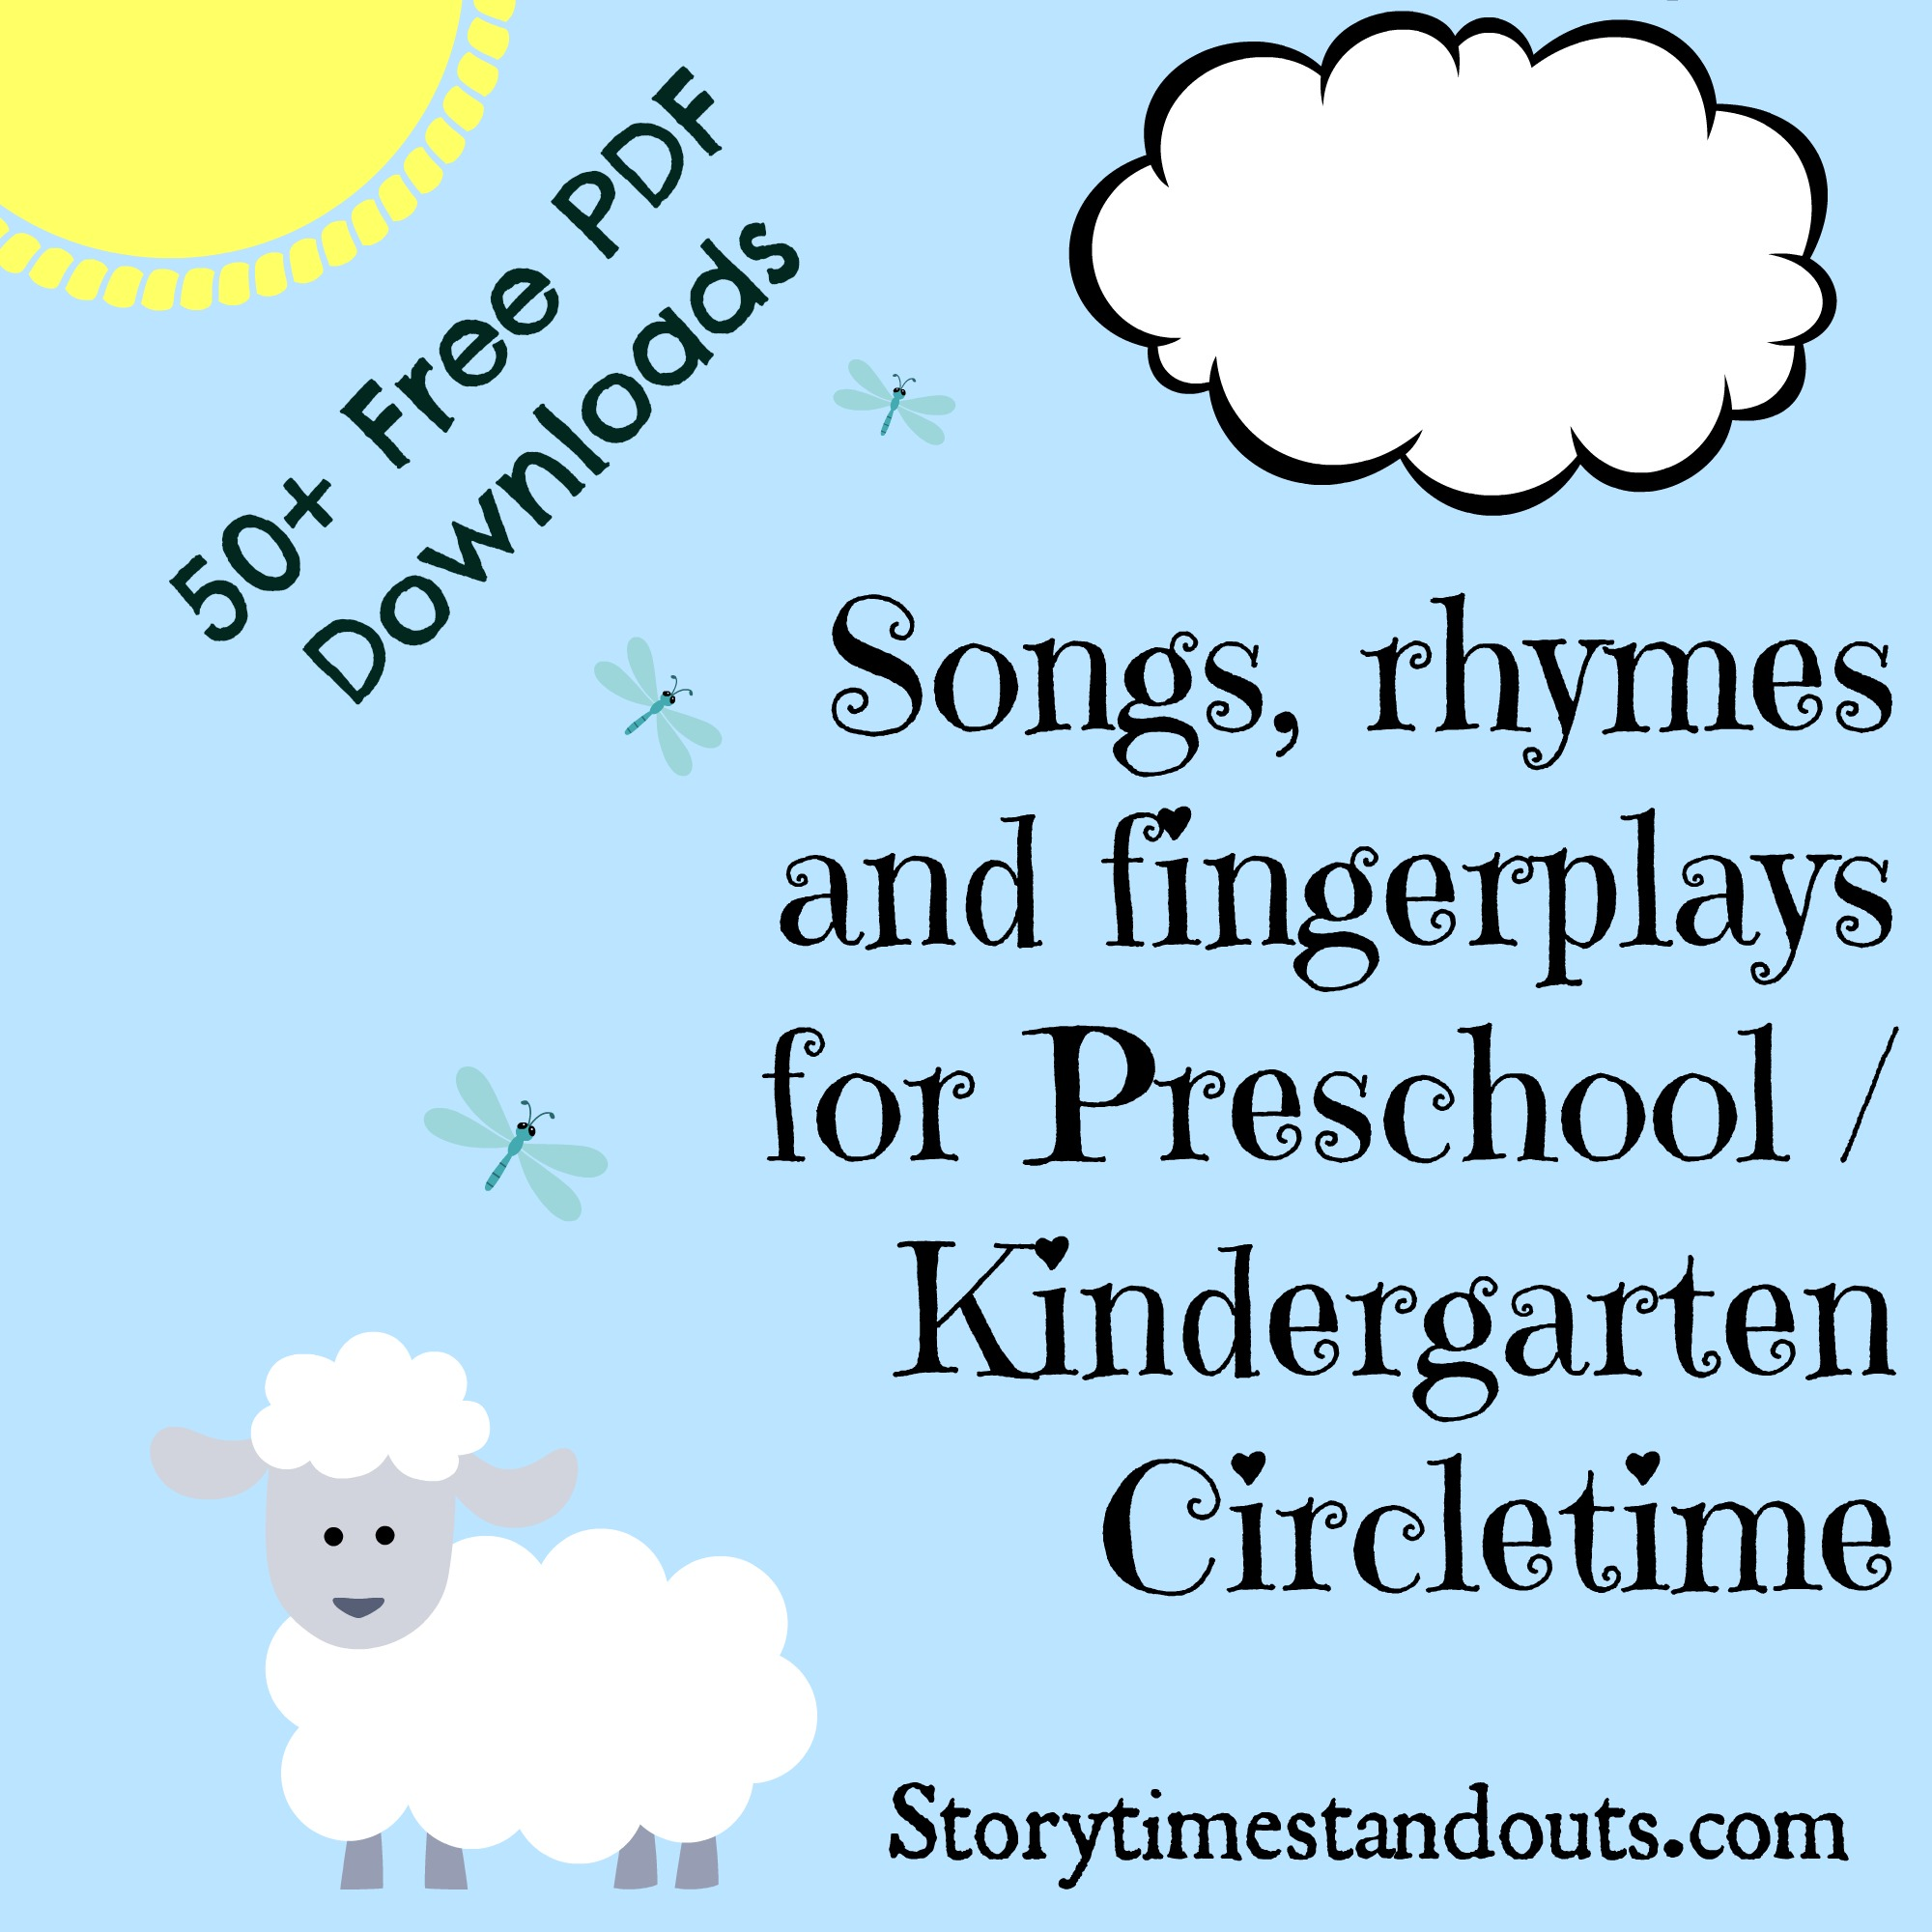 55 Free Printable Rhymes Songs Chants And Fingerplays For Teachers